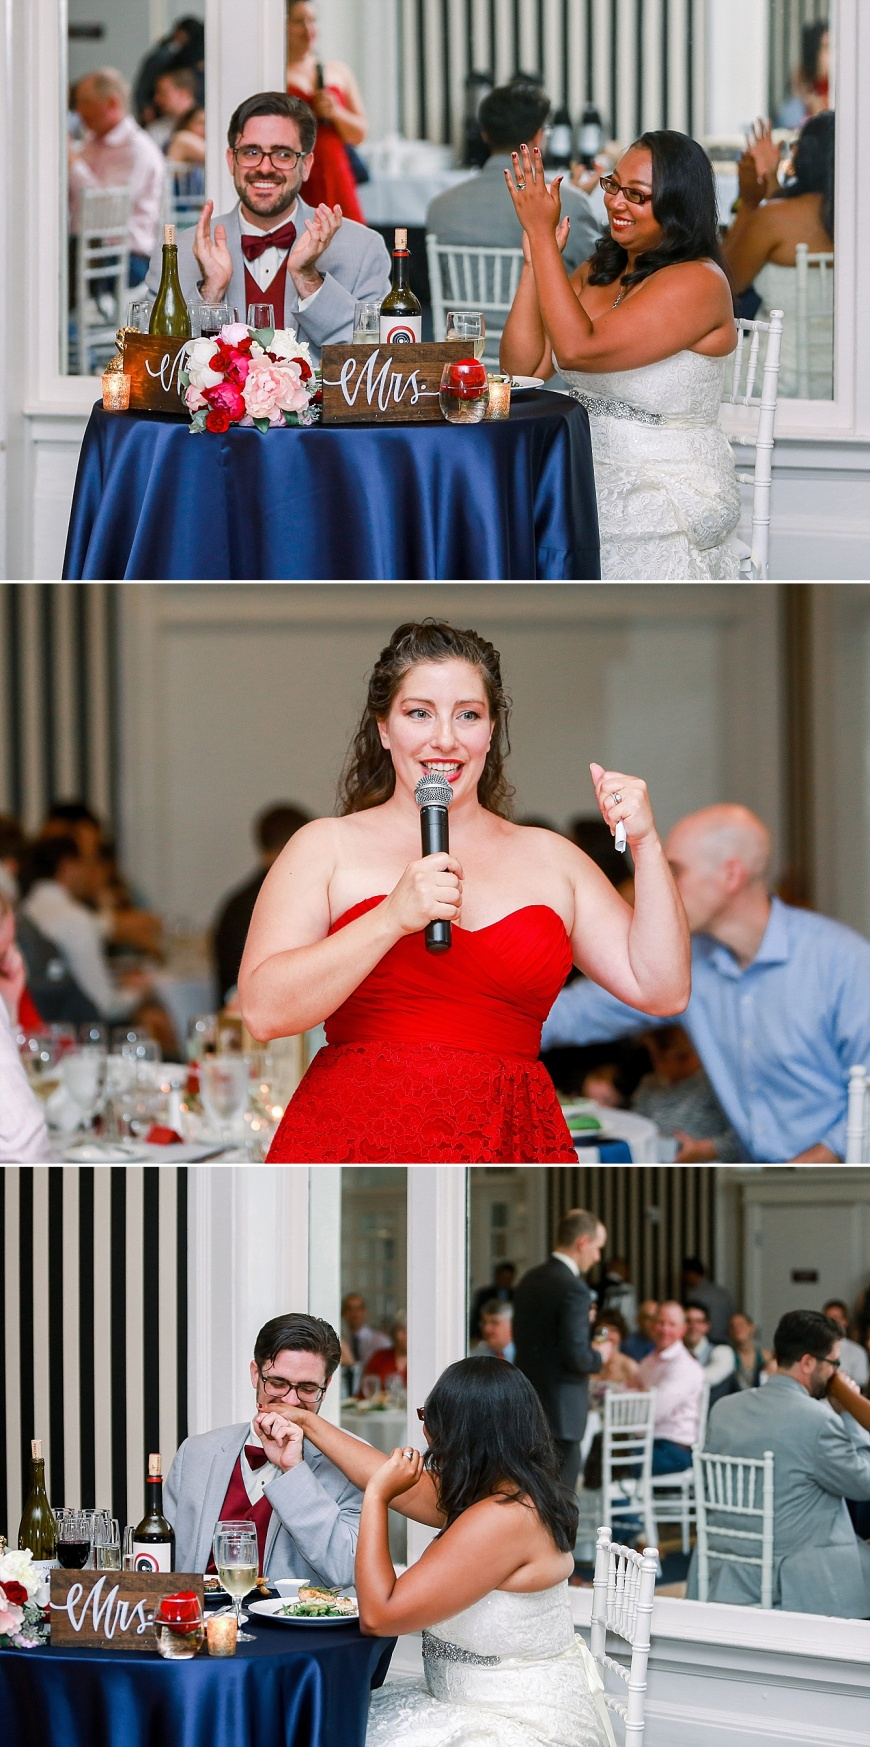 Hotel-Shattuck-Downtown-Berkeley-Wedding-Photographer_1072.jpg